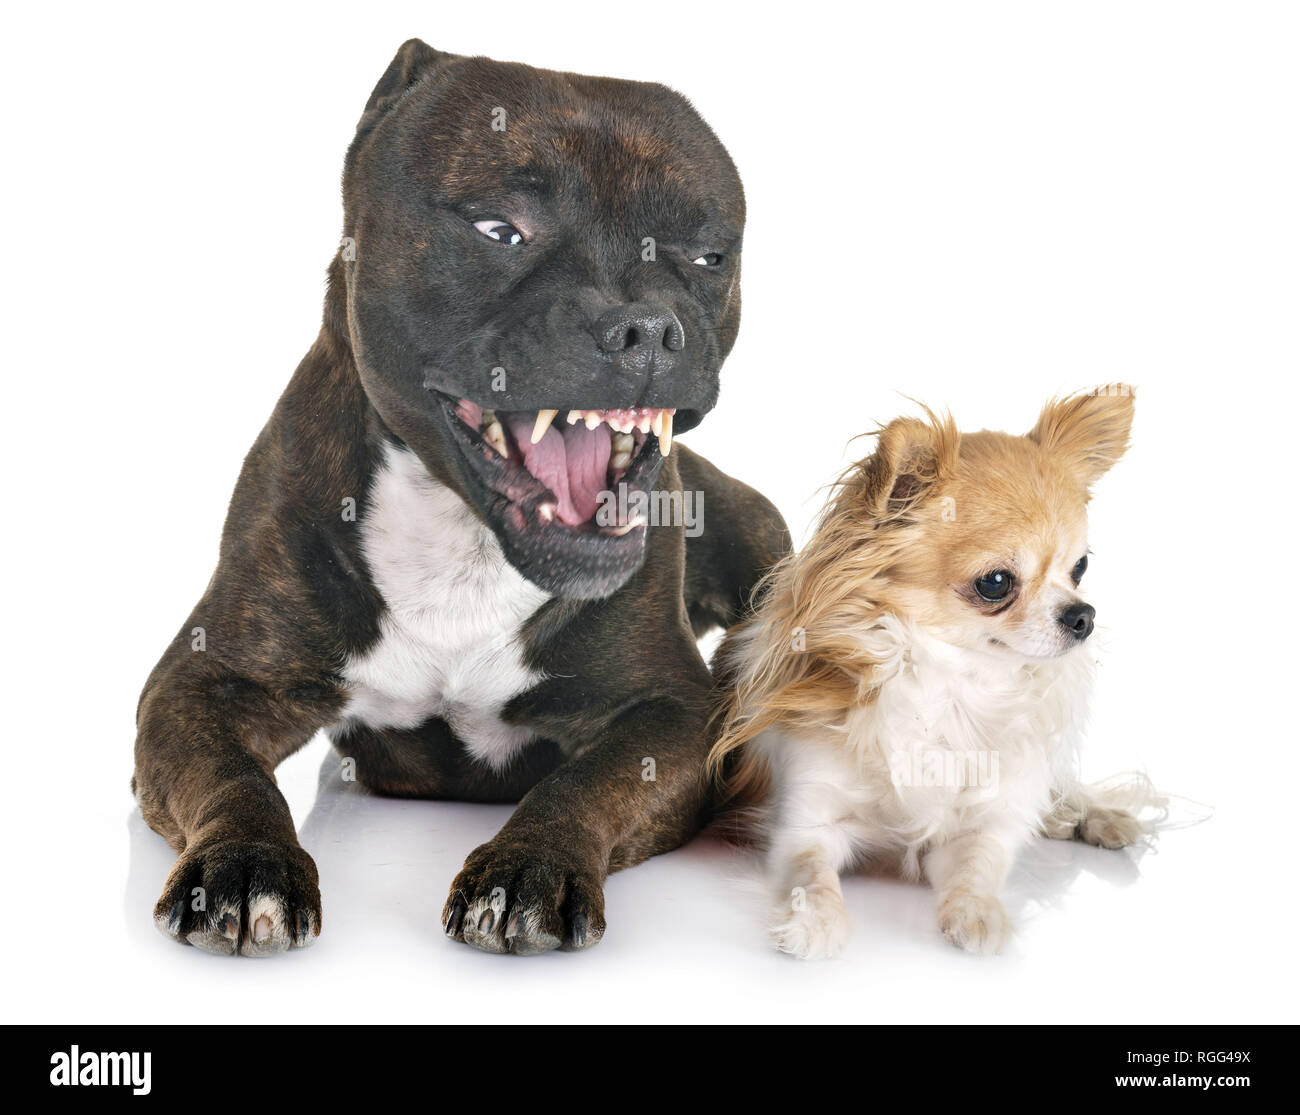 staffordshire bull terrier and chihuahua in front of white background - Stock Image